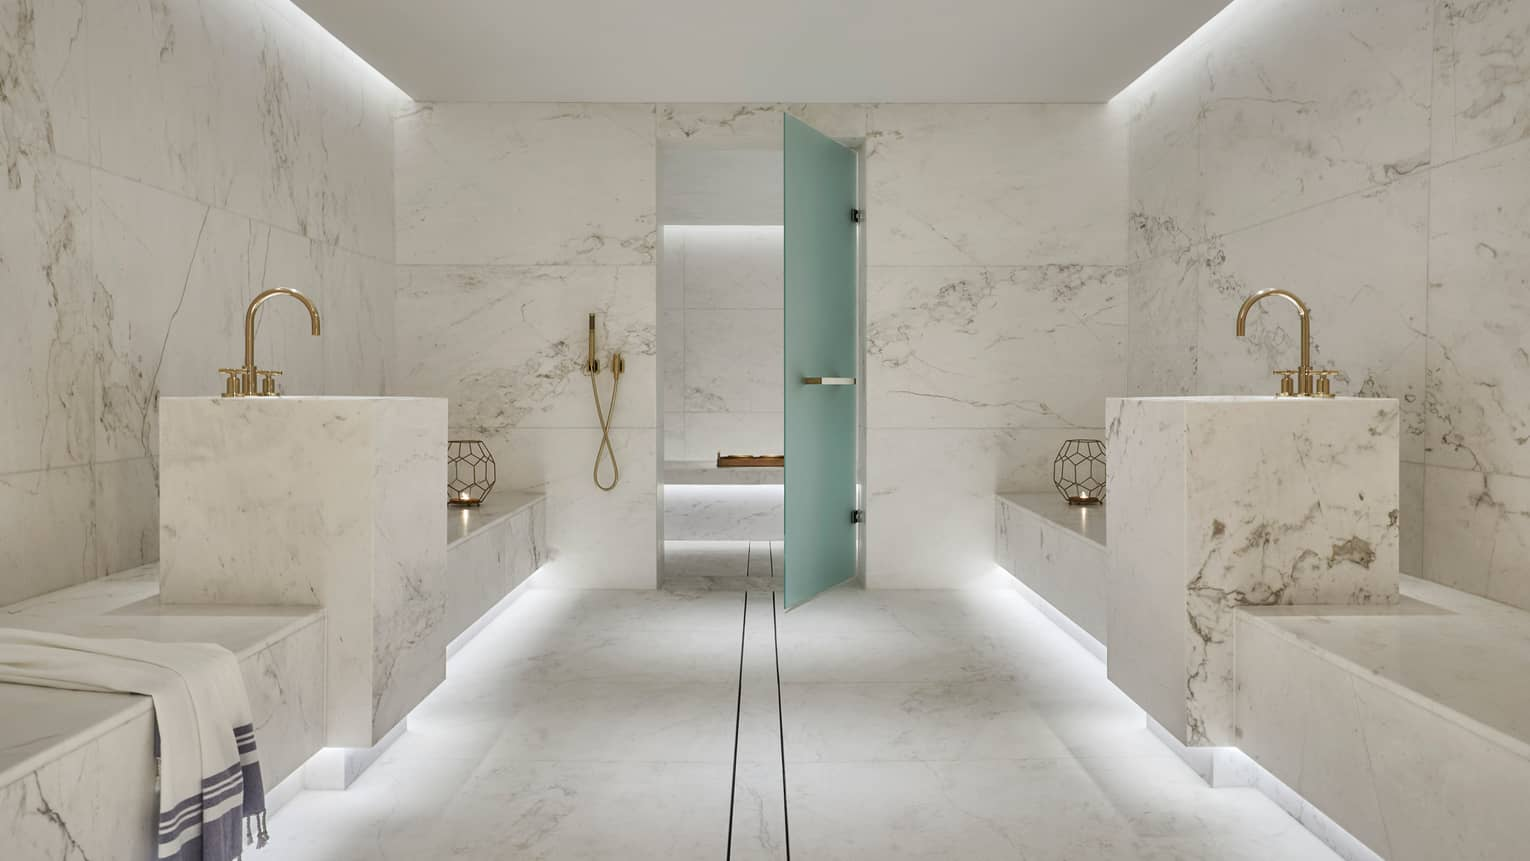 Tropical Hammam escape in white marble spa room, towel draped over side